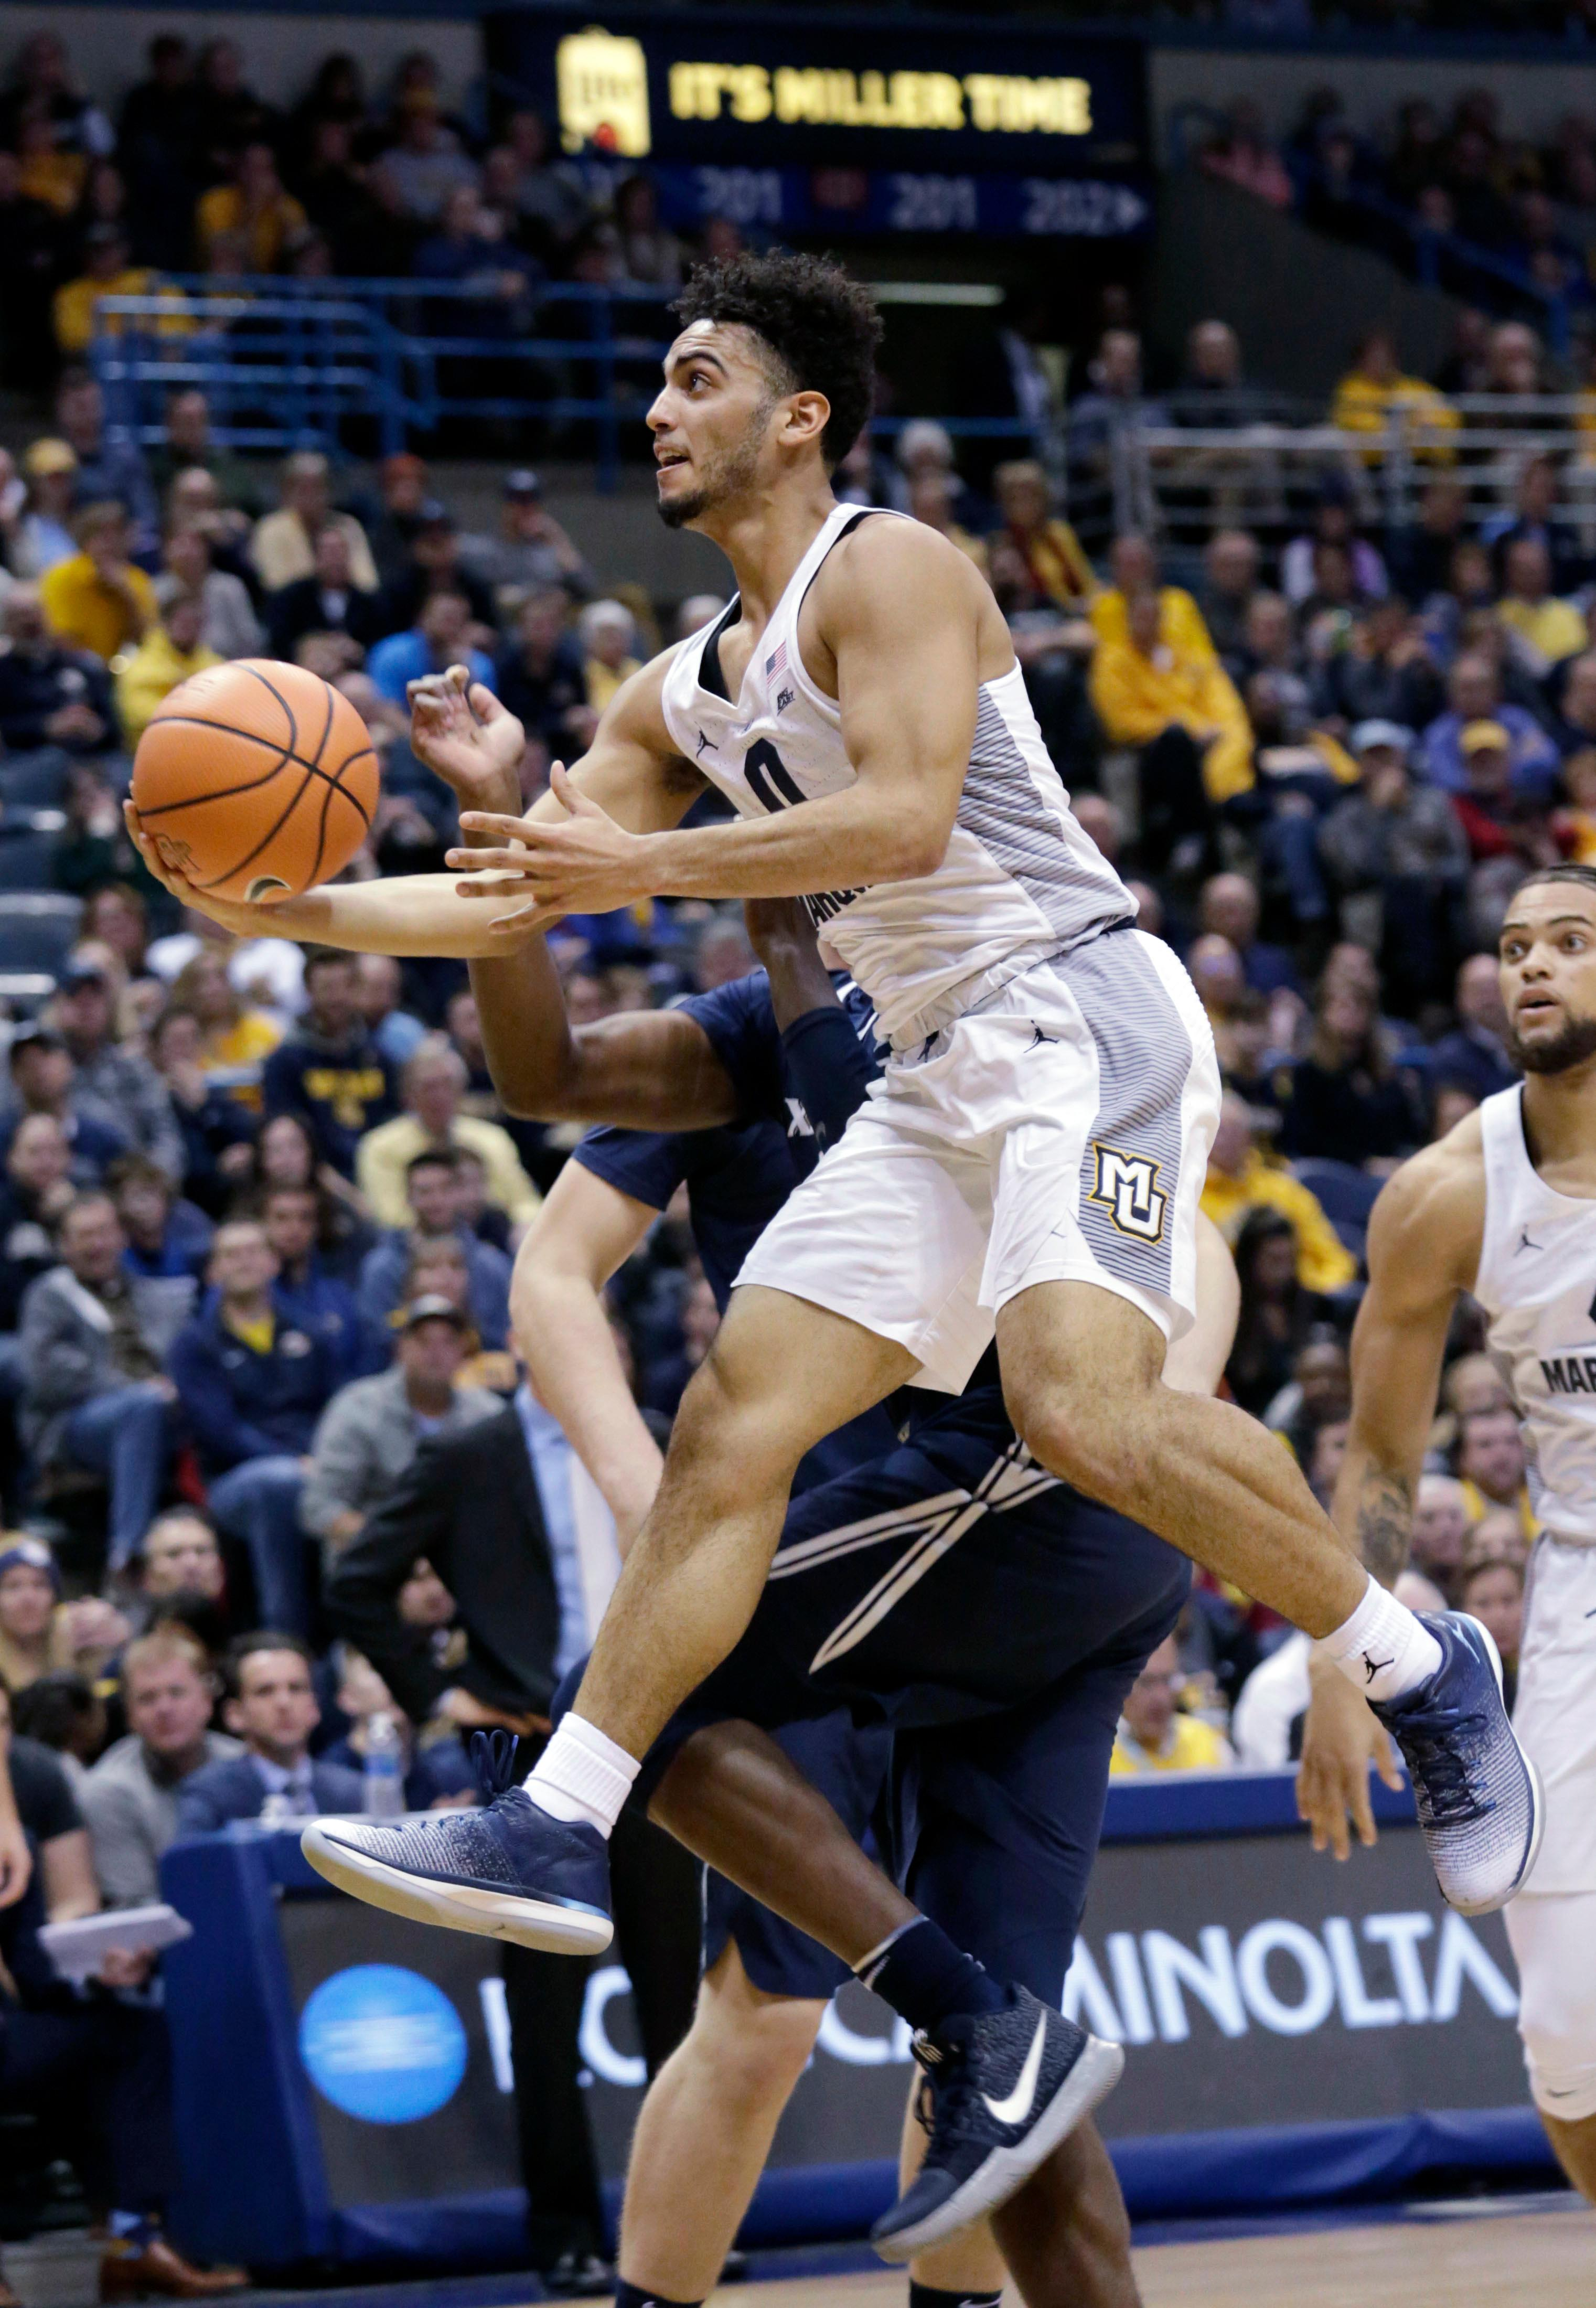 Marquette guard Markus Howard drives to the basket against Xavier during the first half of a basketball game, Wednesday, Dec. 27, 2017, in Milwaukee. (AP Photo/Darren Hauck)